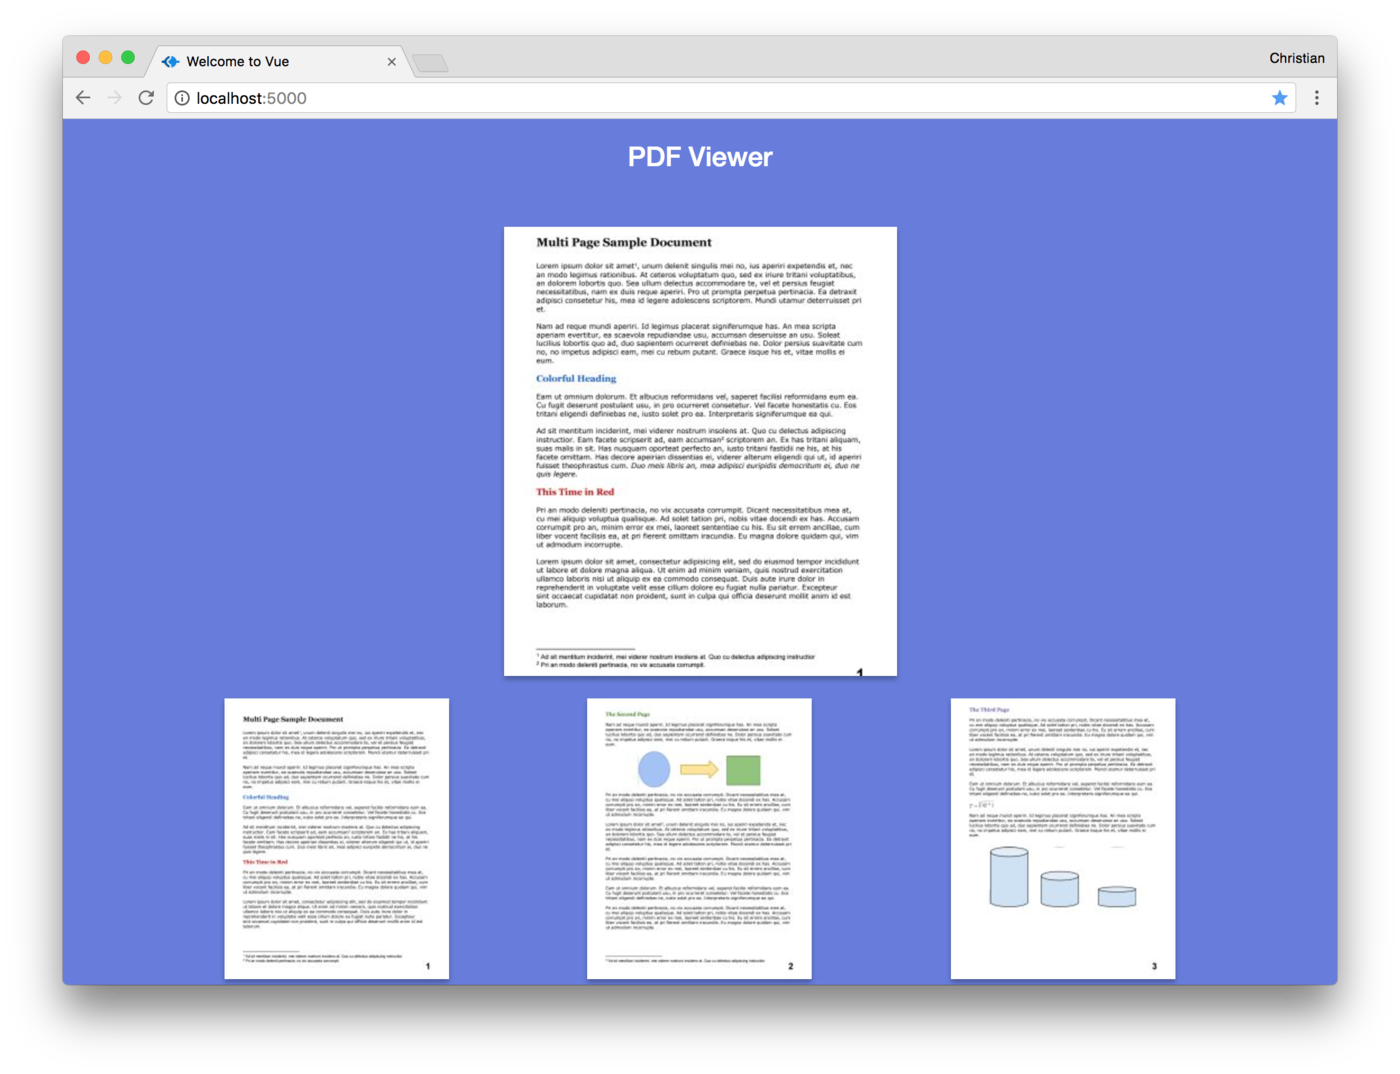 Image of Preview and Pages